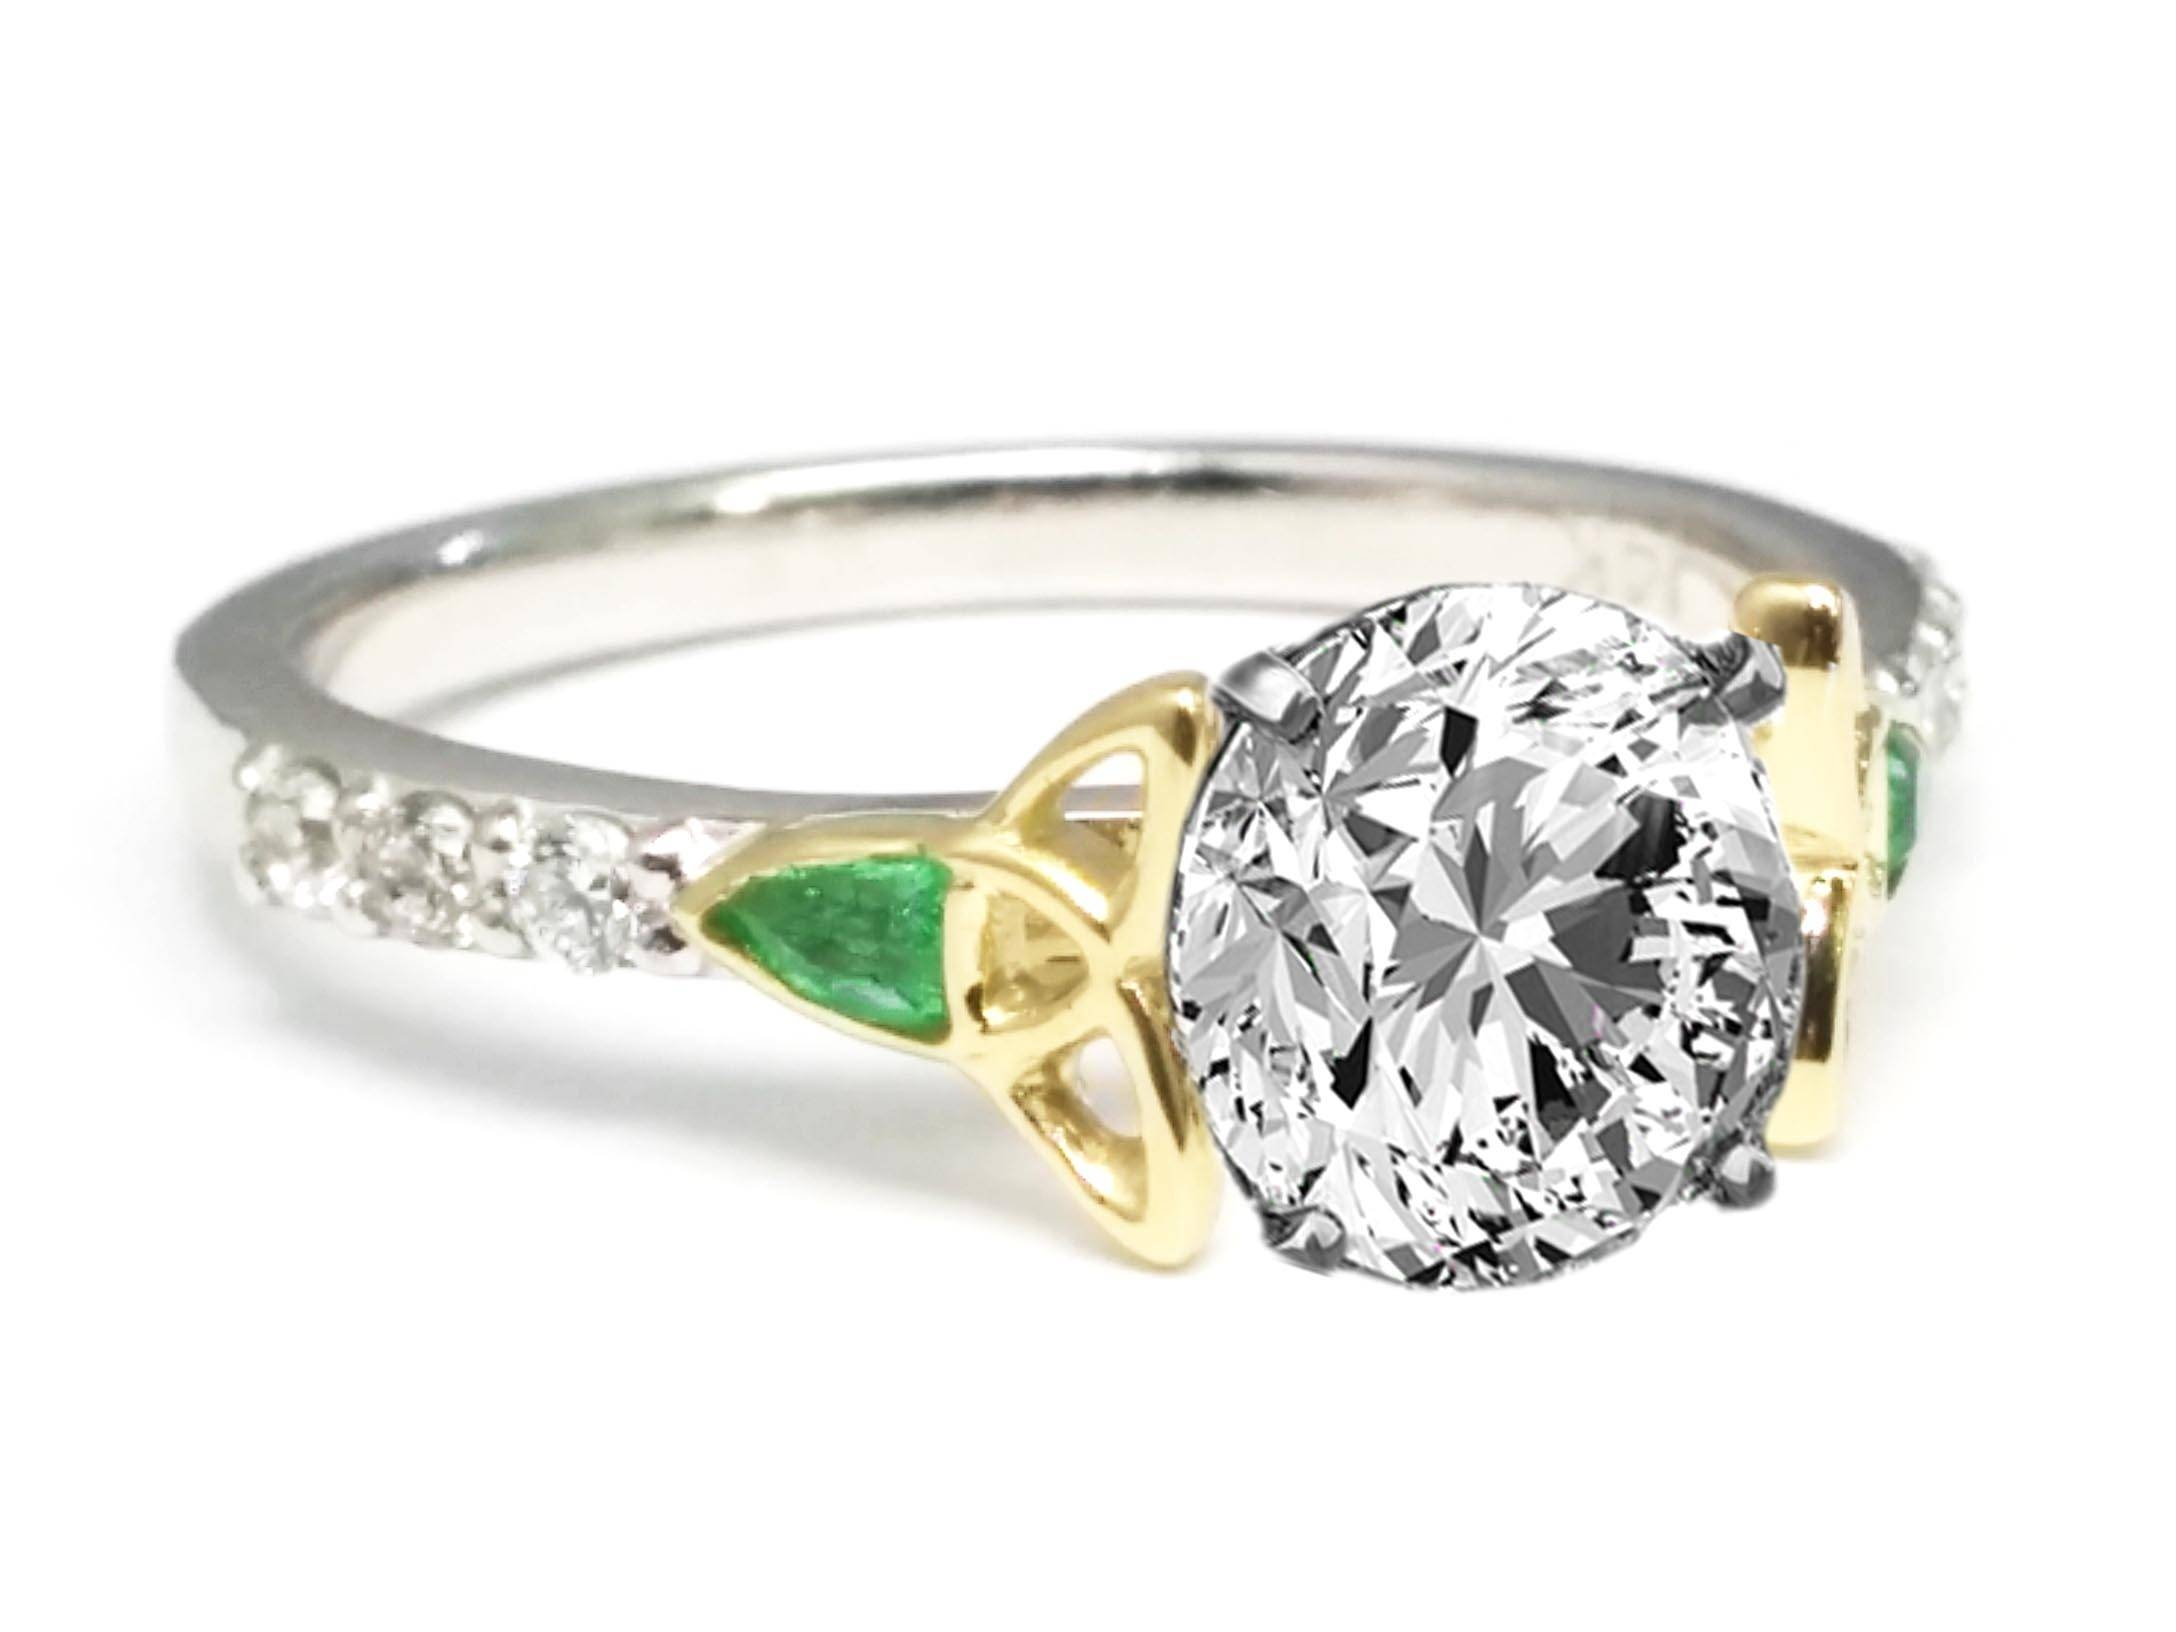 Celtic – Engagement Rings From Mdc Diamonds Nyc Throughout Celtic Engagement Rings (View 5 of 15)